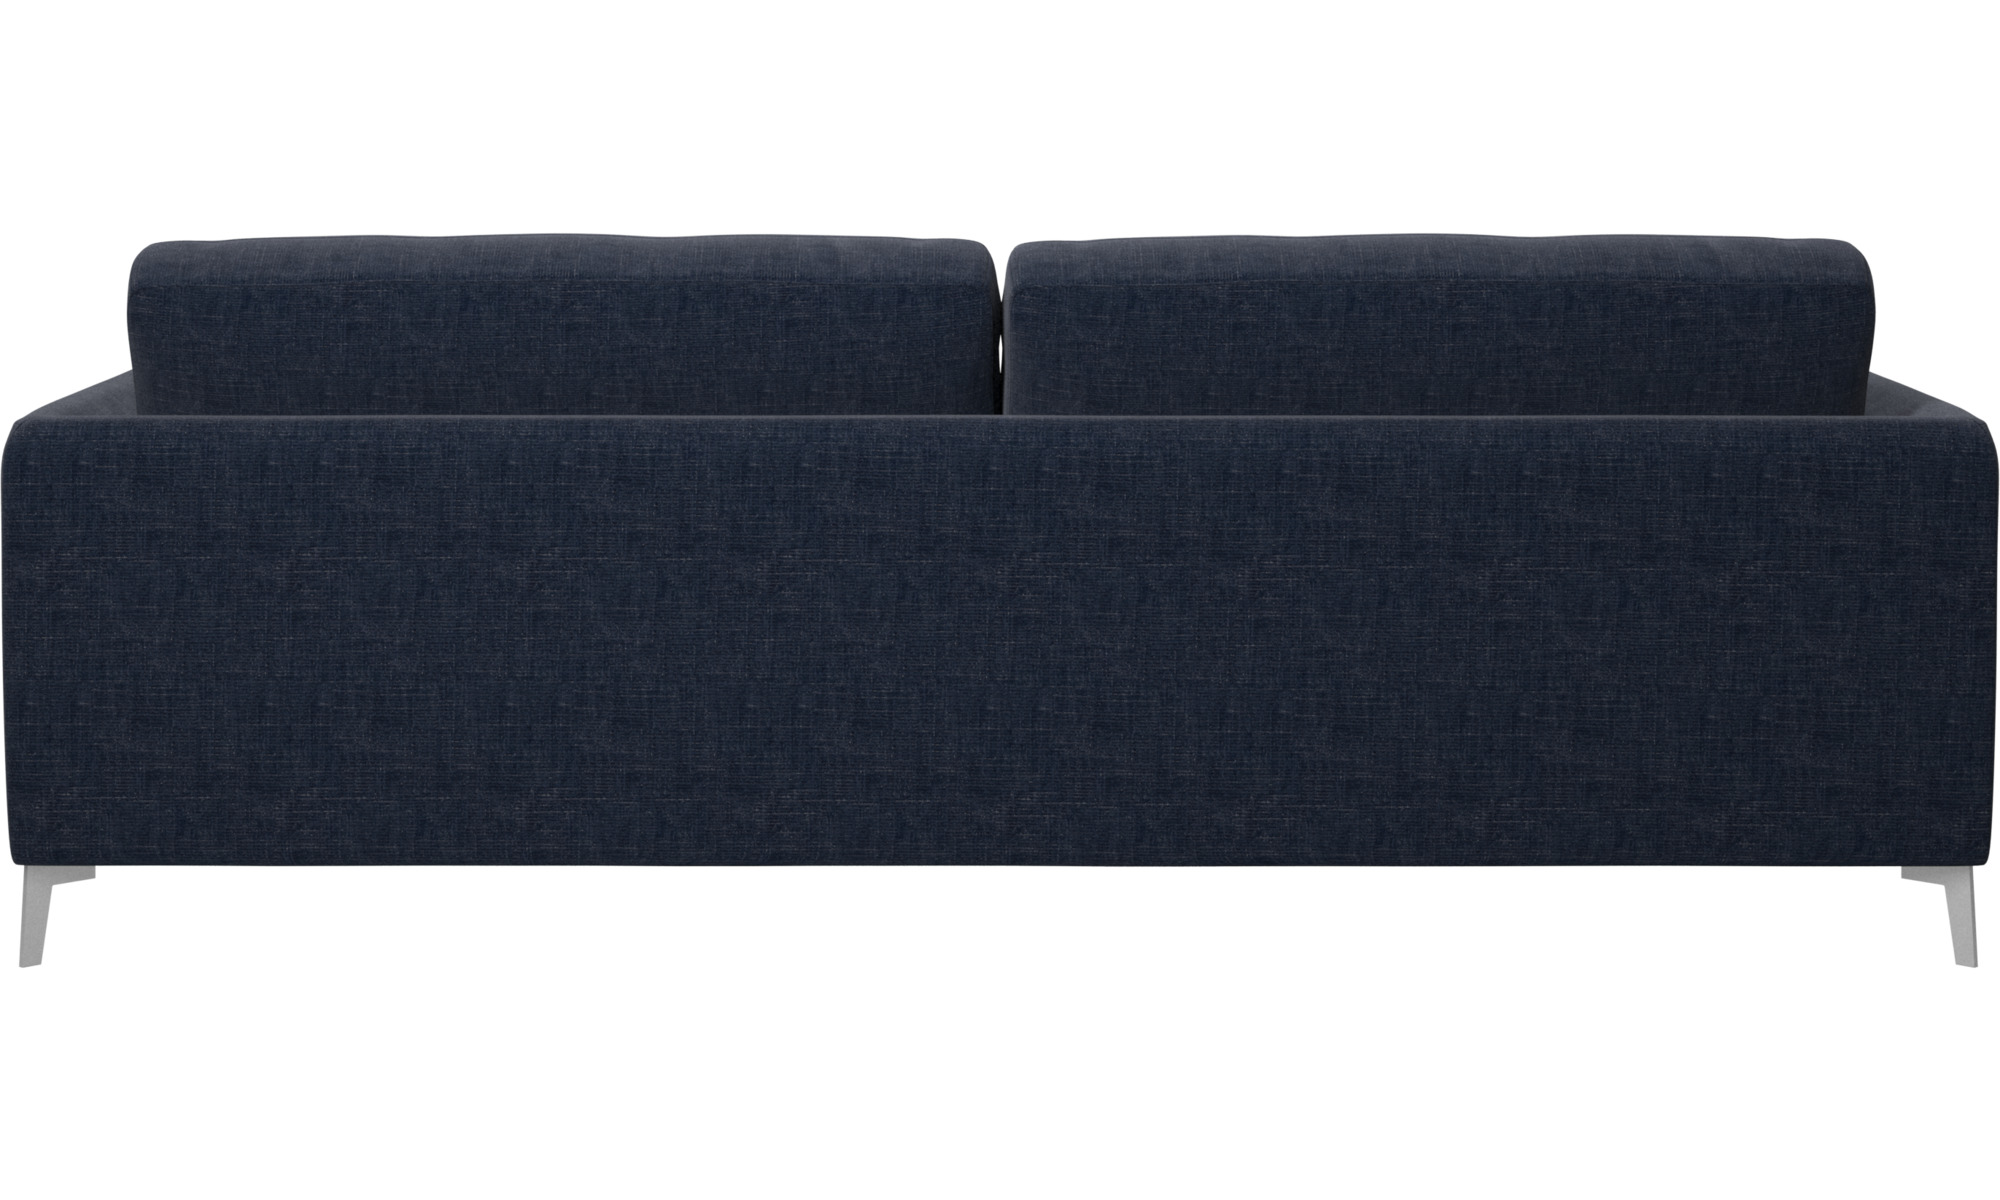 navy blue napoli fargo sofa boconcept. Black Bedroom Furniture Sets. Home Design Ideas